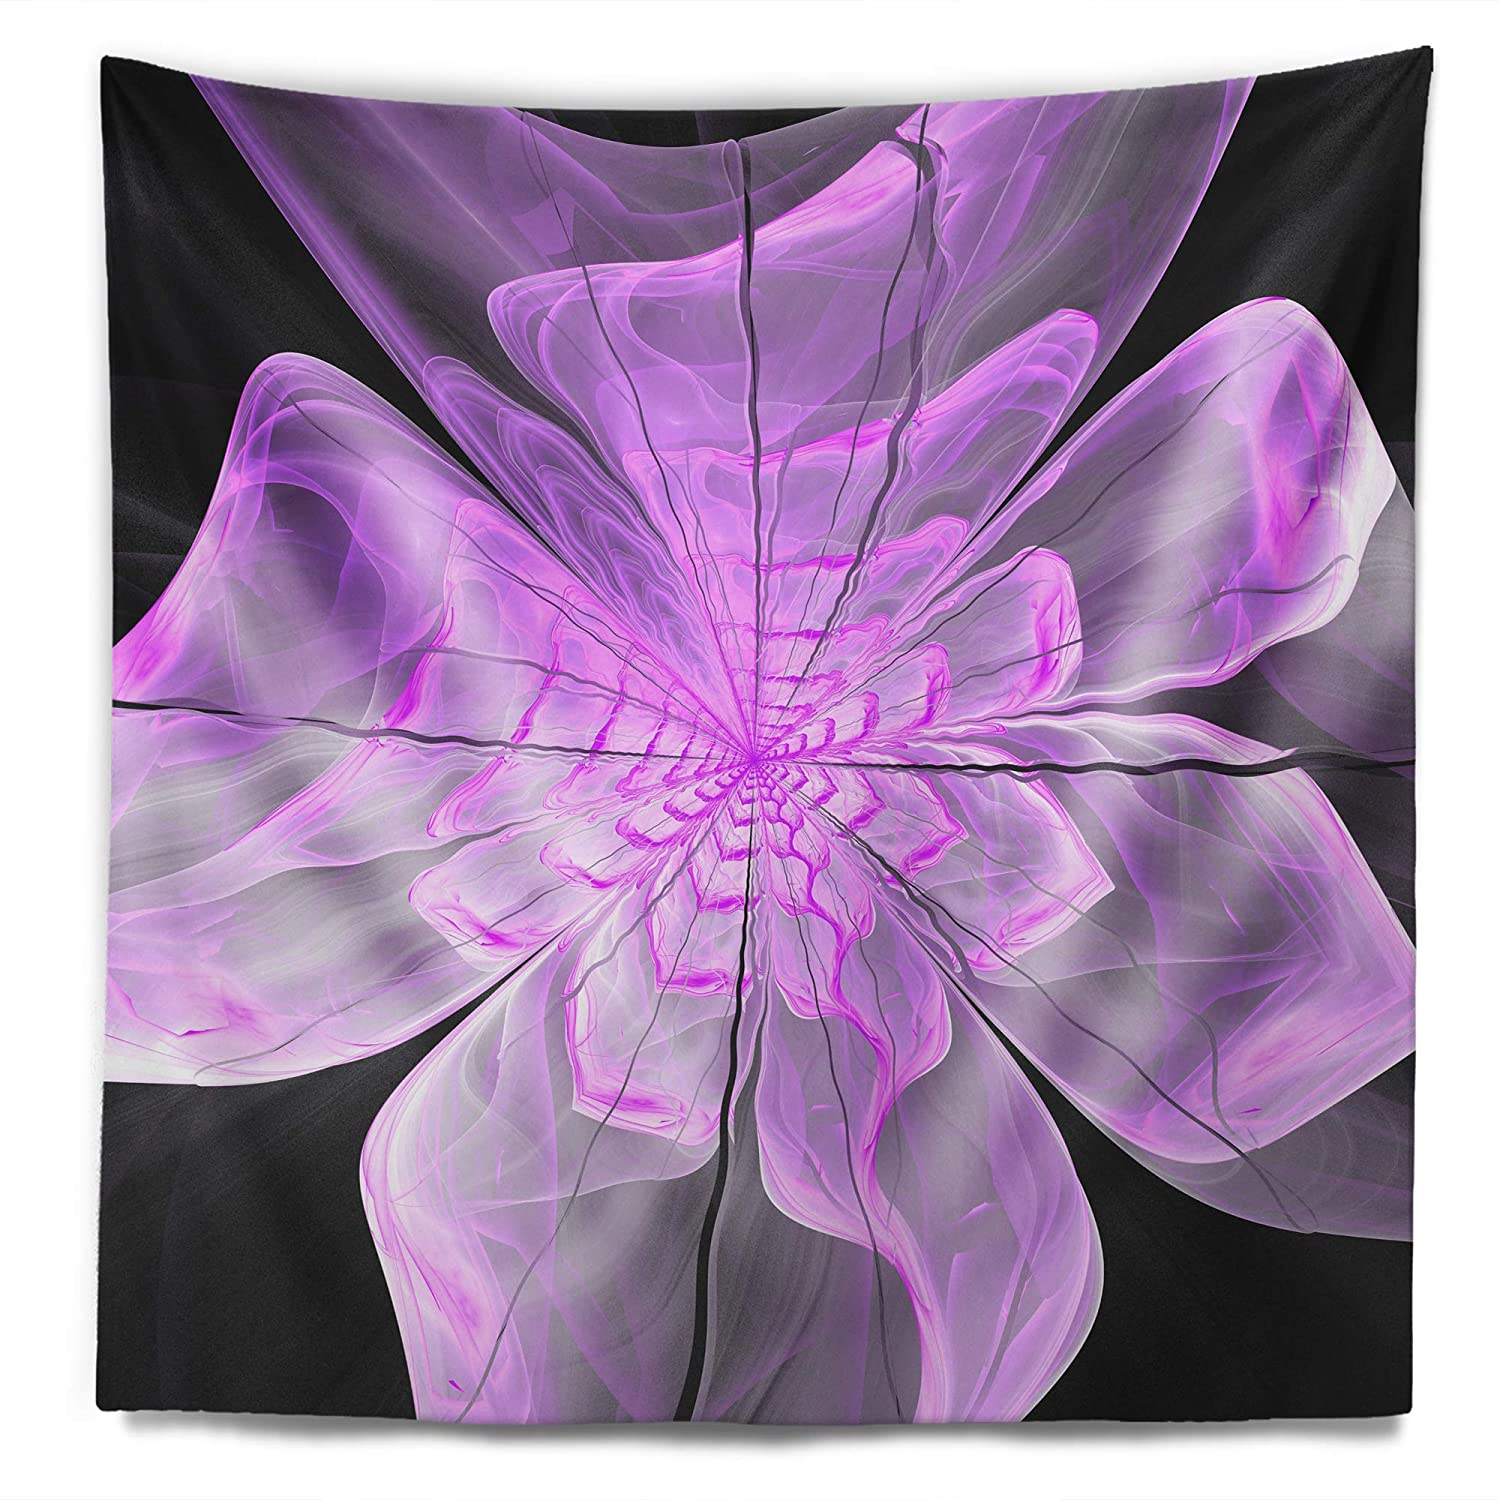 Designart TAP11993-50-60  Lush Purple Digital Fractal Flower Floral Blanket D/écor Art for Home and Office Wall Tapestry Large x 60 in Created On Lightweight Polyester Fabric 50 in